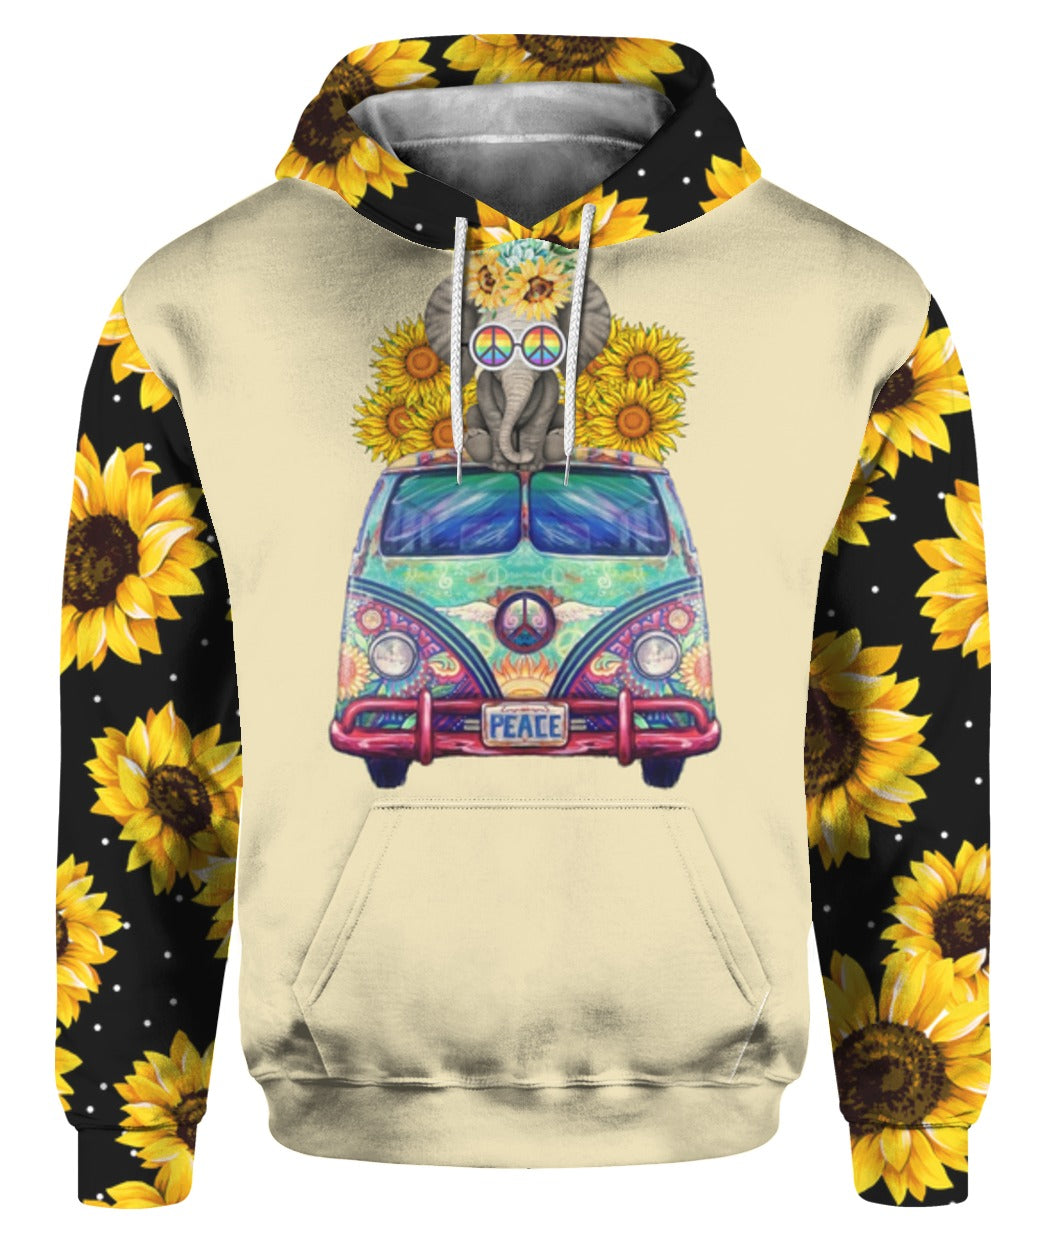 Hippe Sunflower 3D Hoodie Full Printed - Wonder Hippie Official